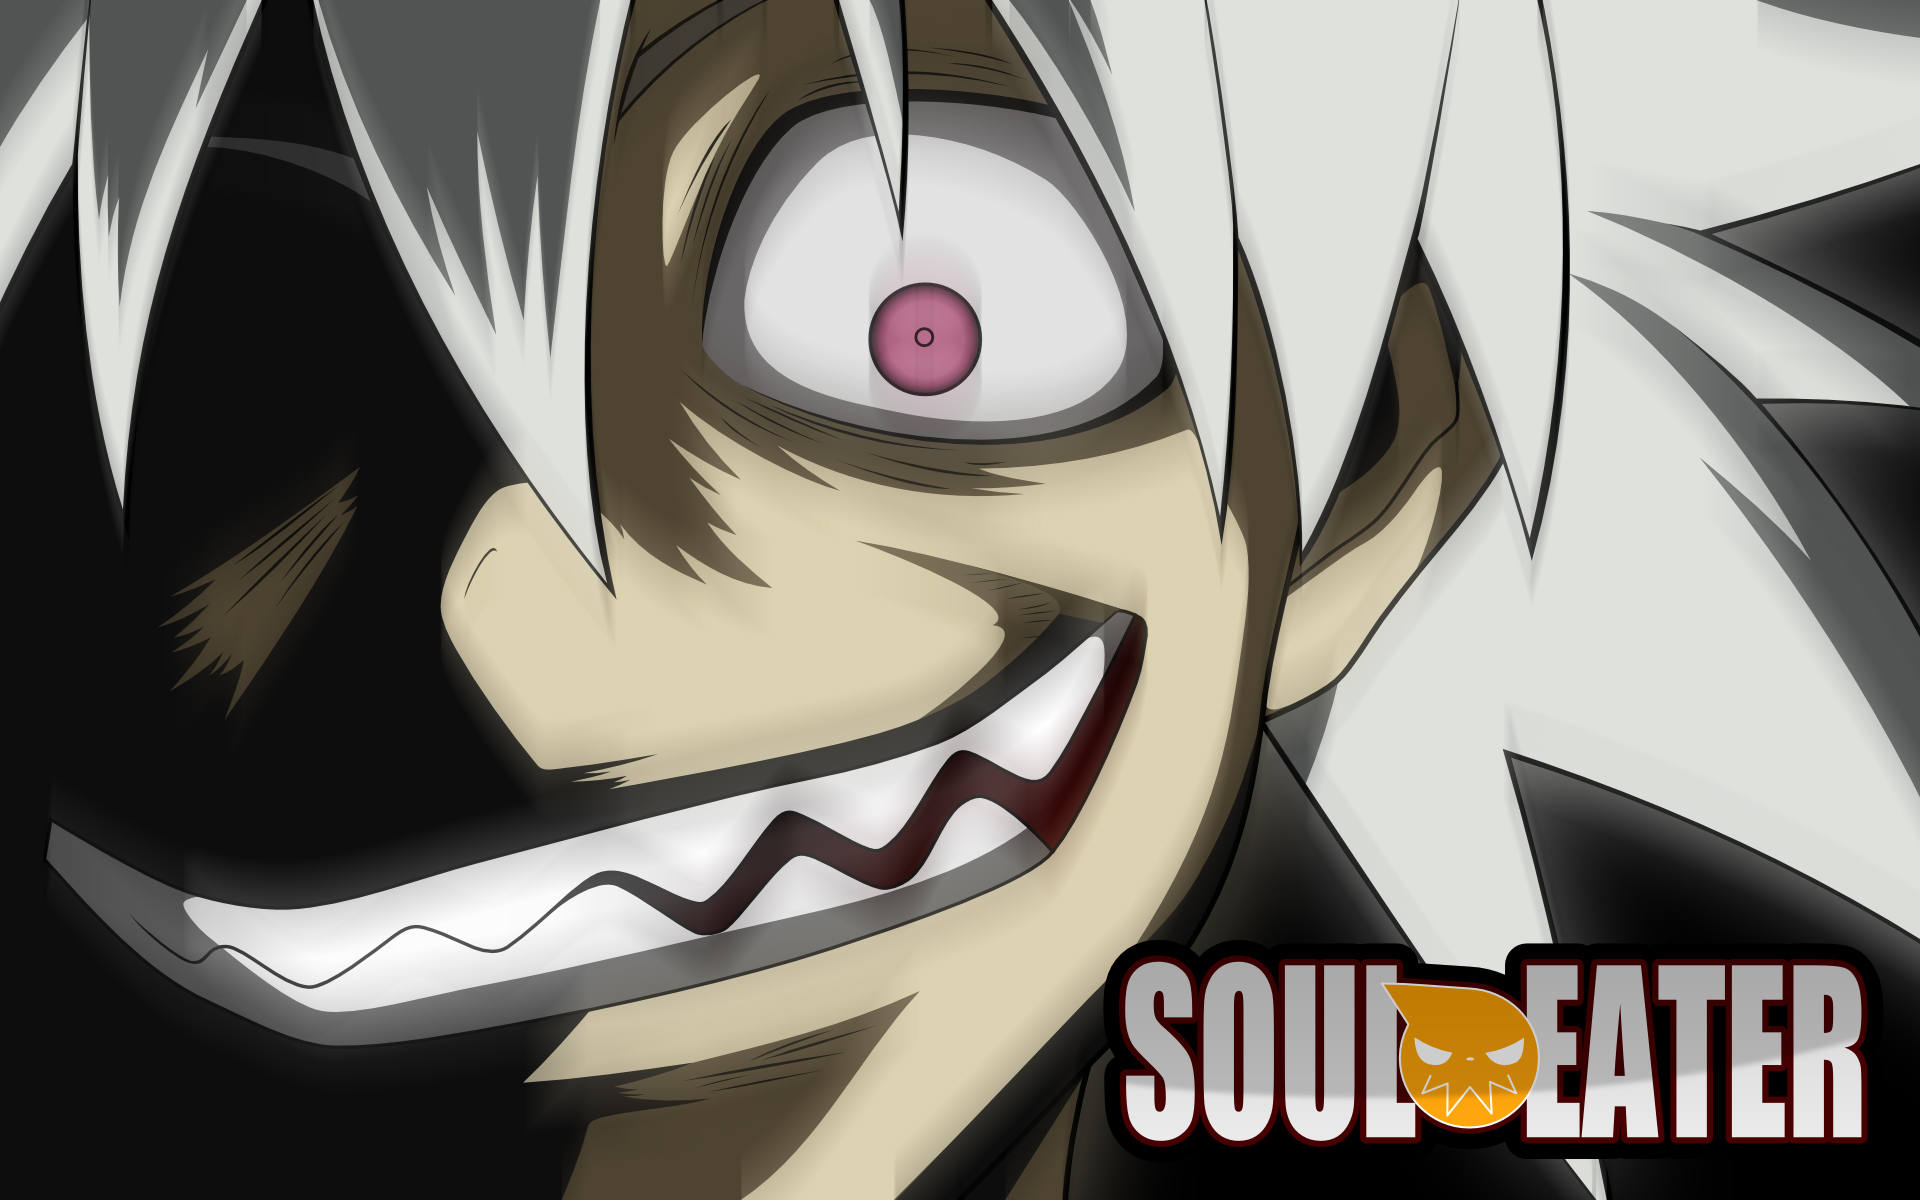 What Soul Eater Character Are You? (1)